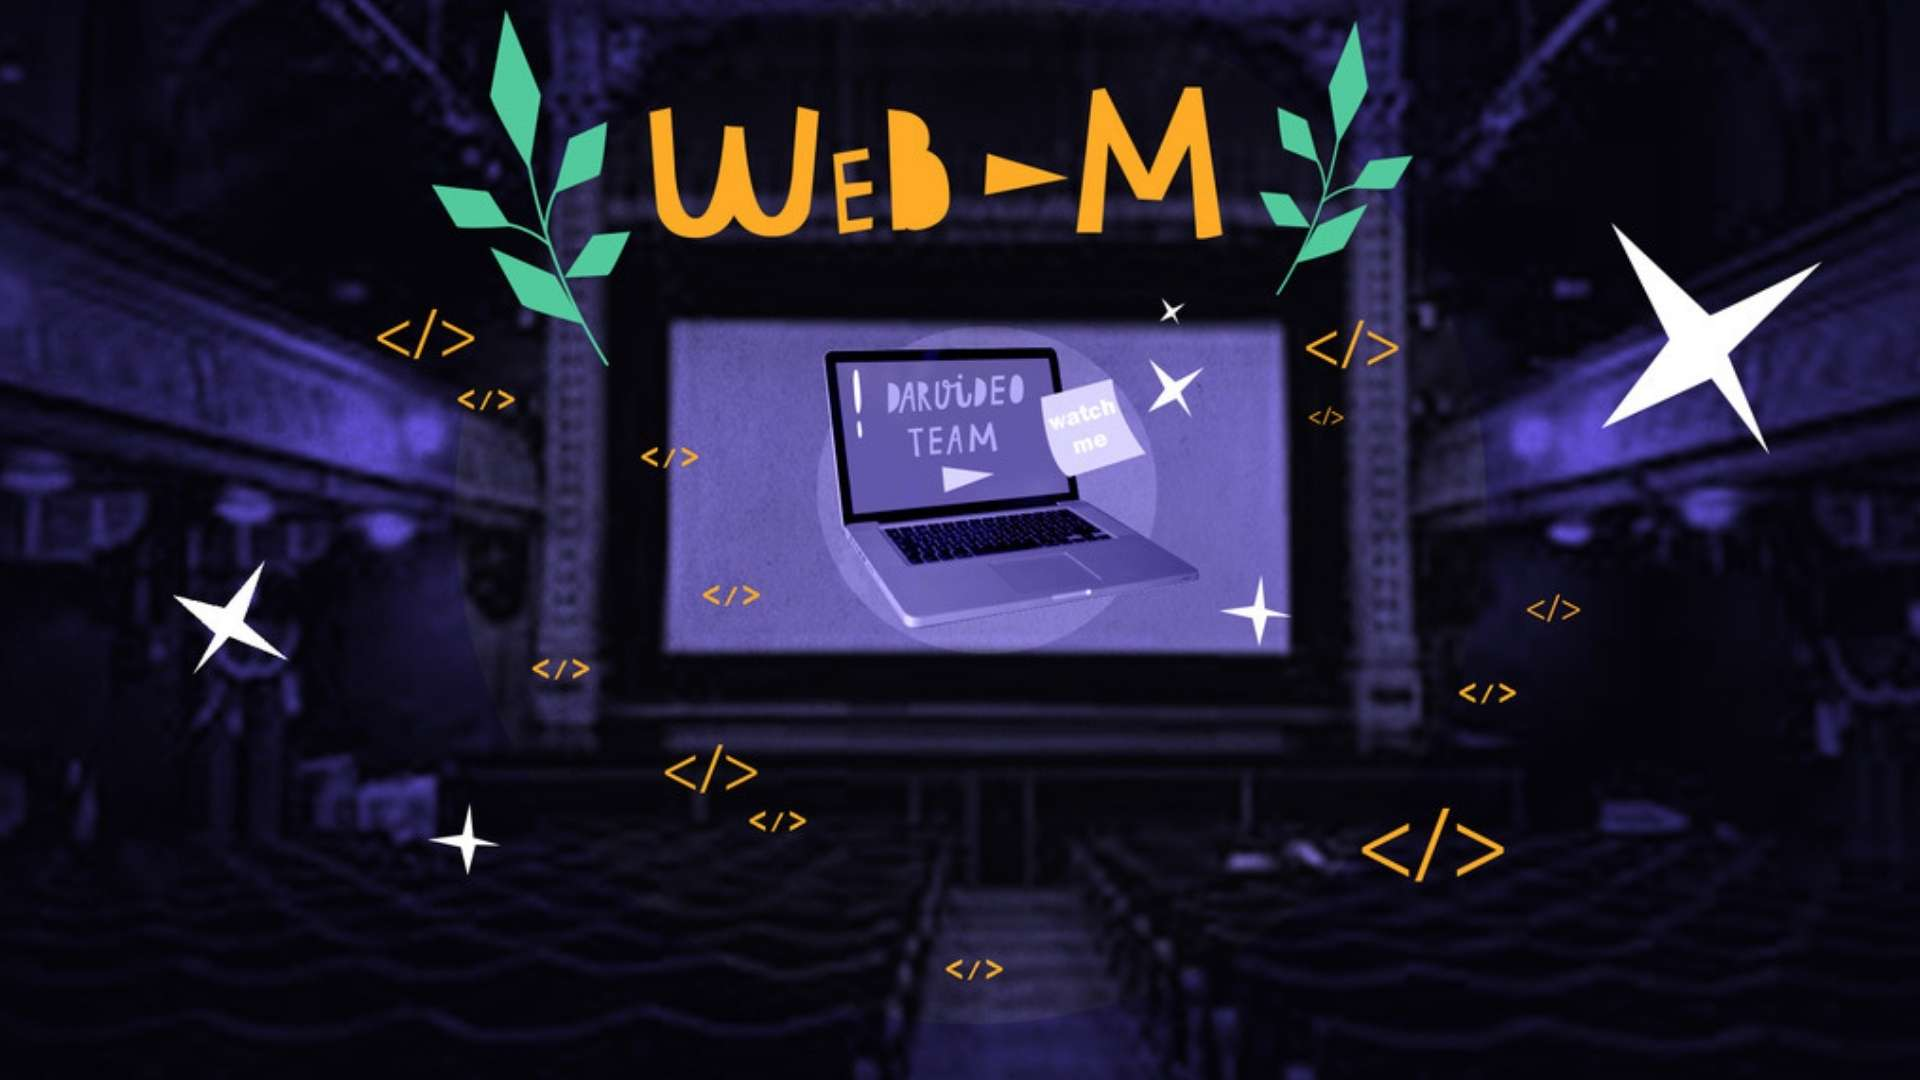 WebM as the Most Effective Approach for your Video